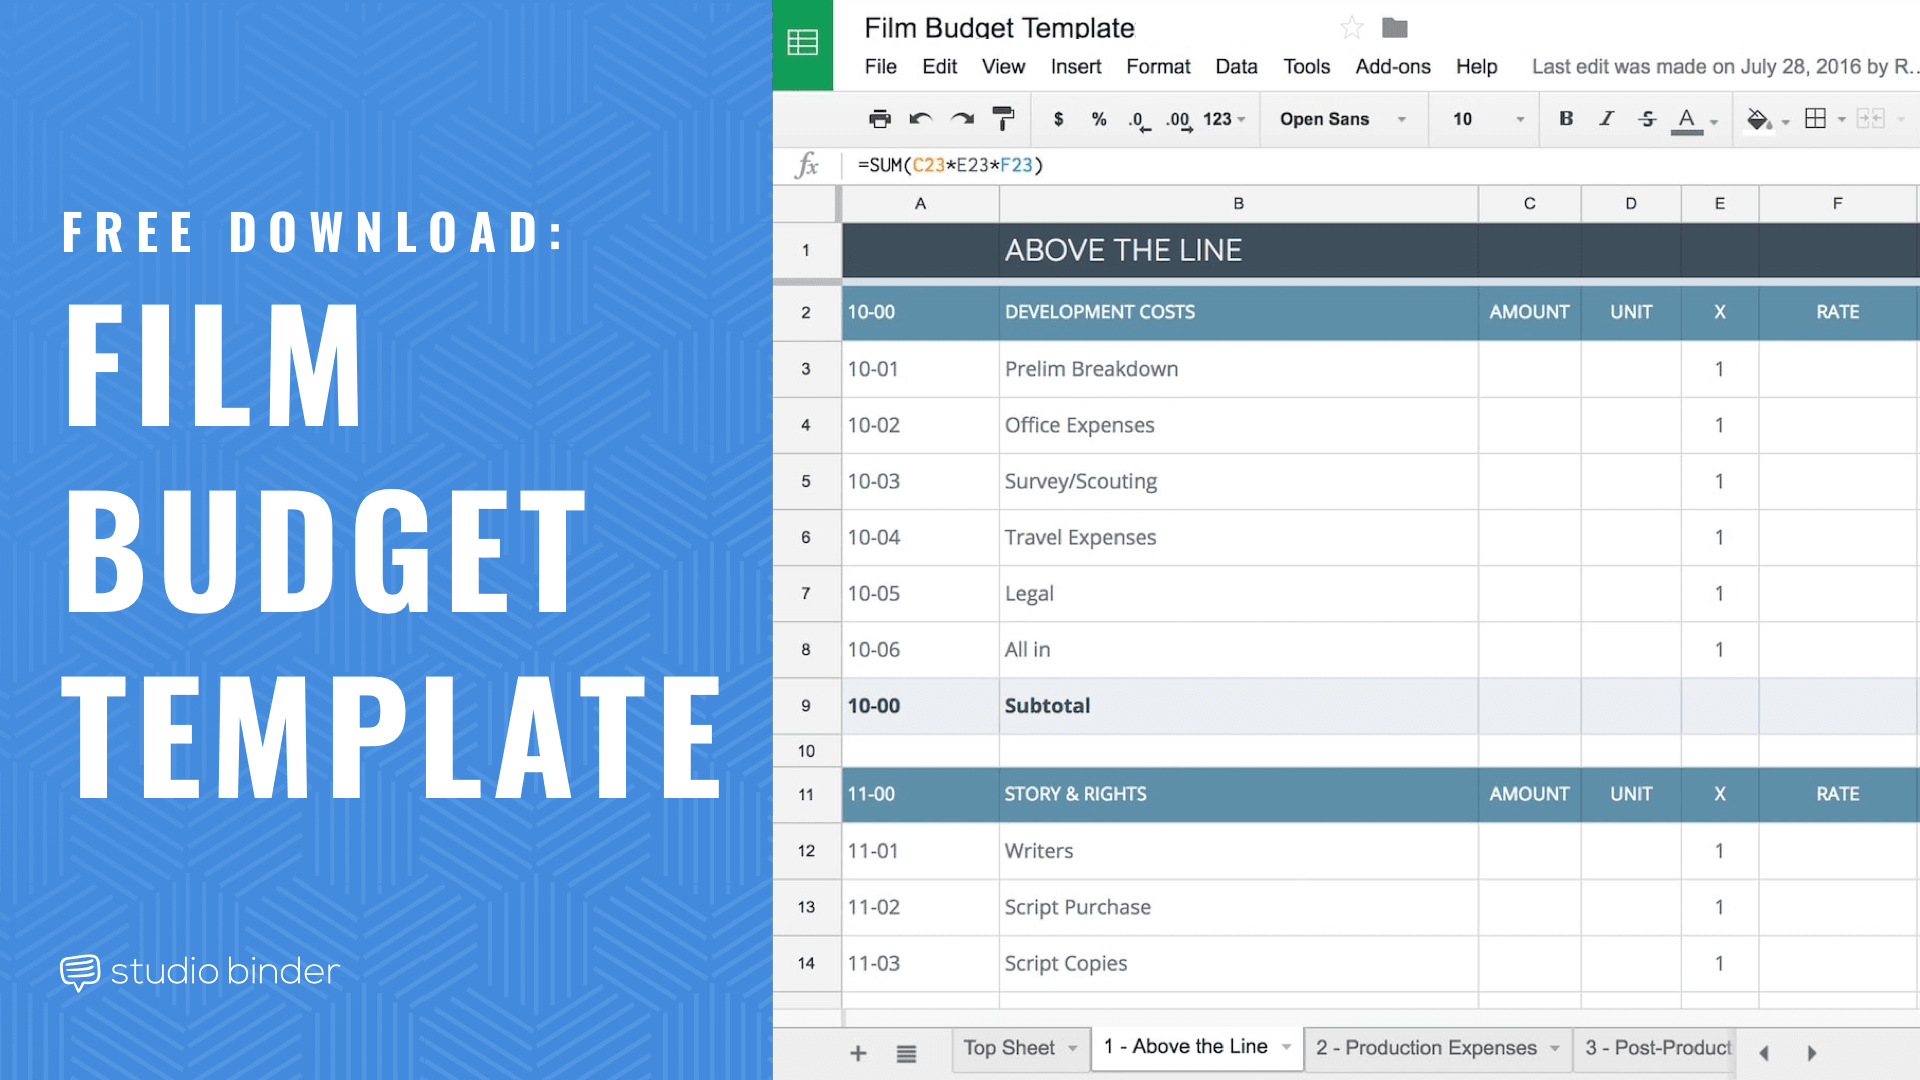 Download your FREE Film Budget Template for Film & Video